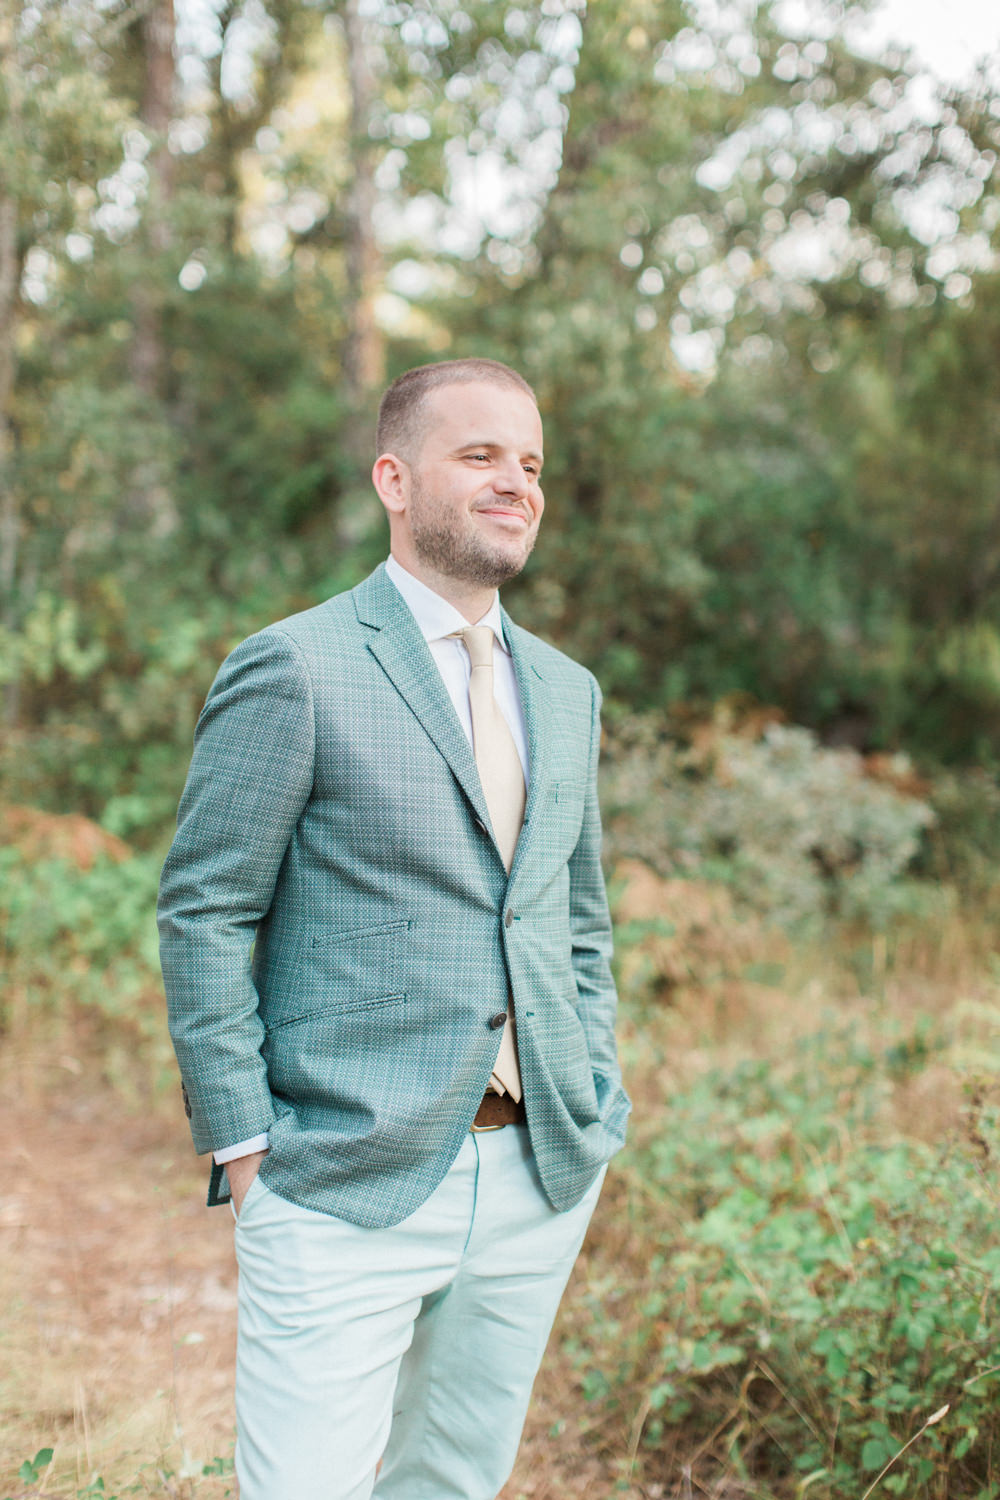 Laid Back Outdoor Wedding at Luz Houses in Portugal full of Foliage